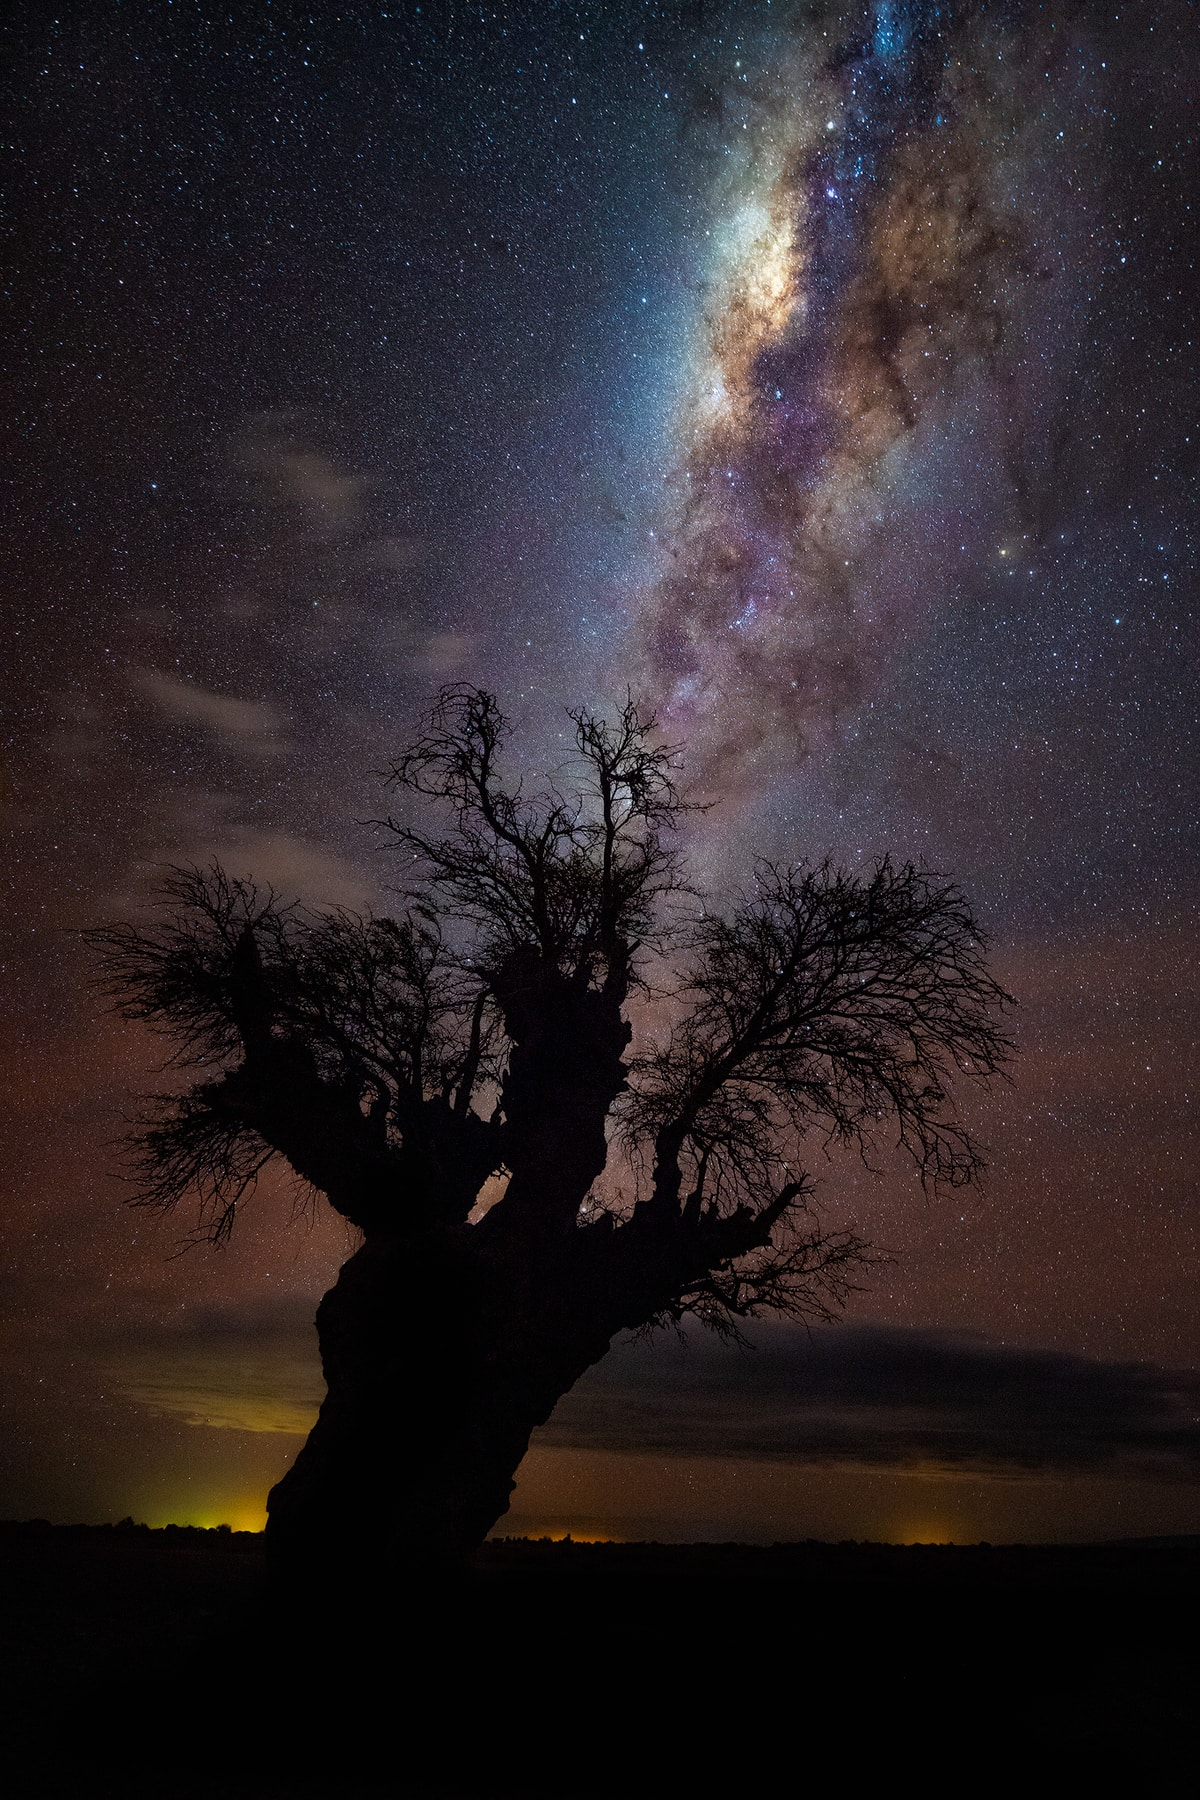 Algarrobo and Milky Way in the Salar de Atacama, Antofagasta Region.